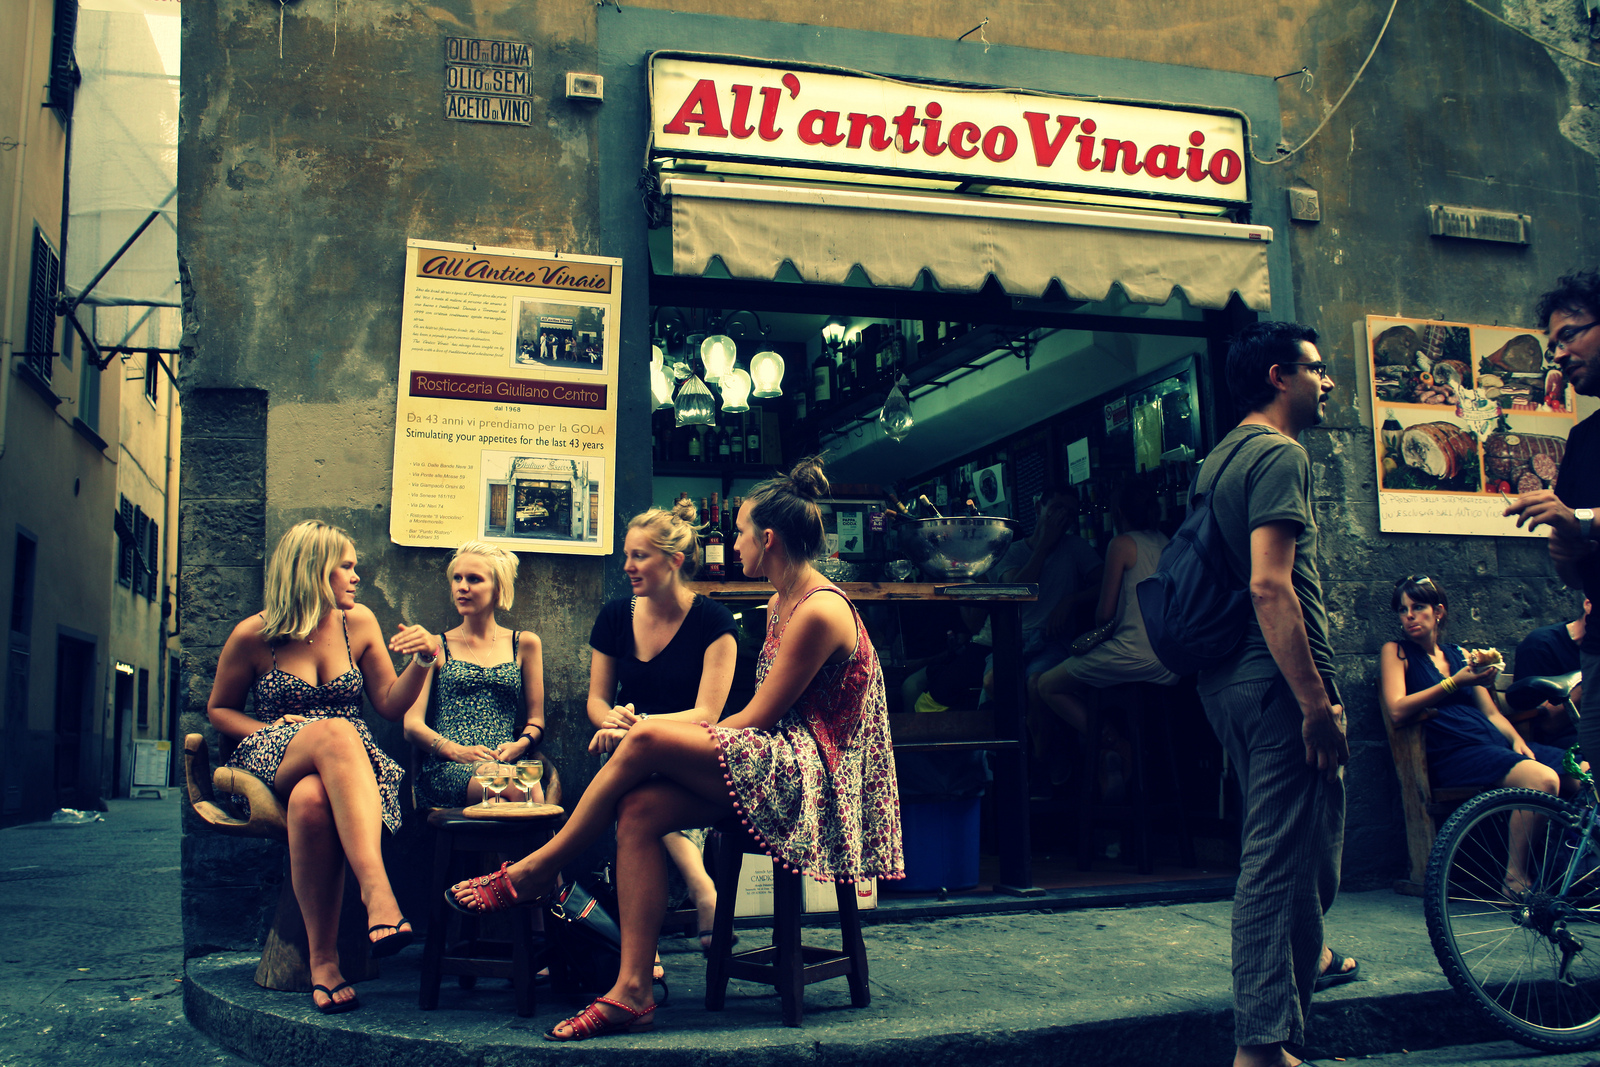 All'Antico Vinaio [Photo credits: Ro'tten]